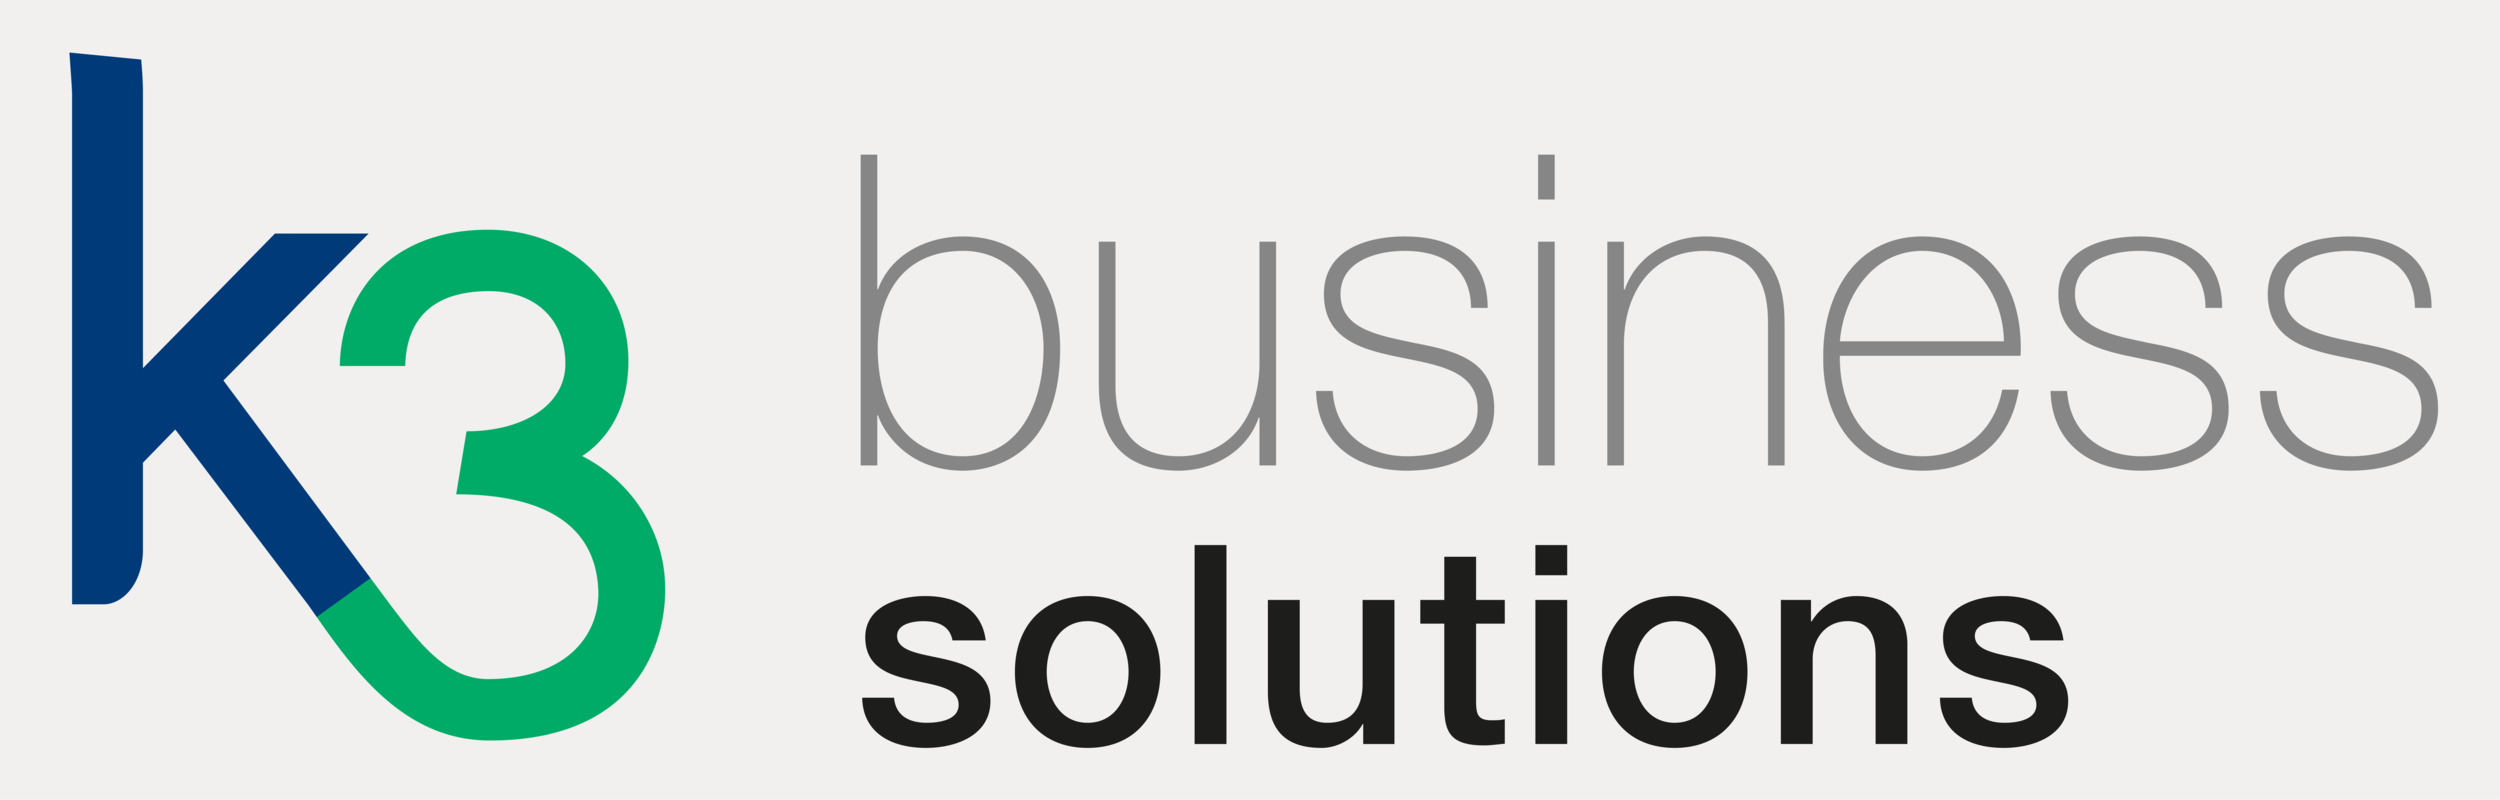 K3 Business Solutions